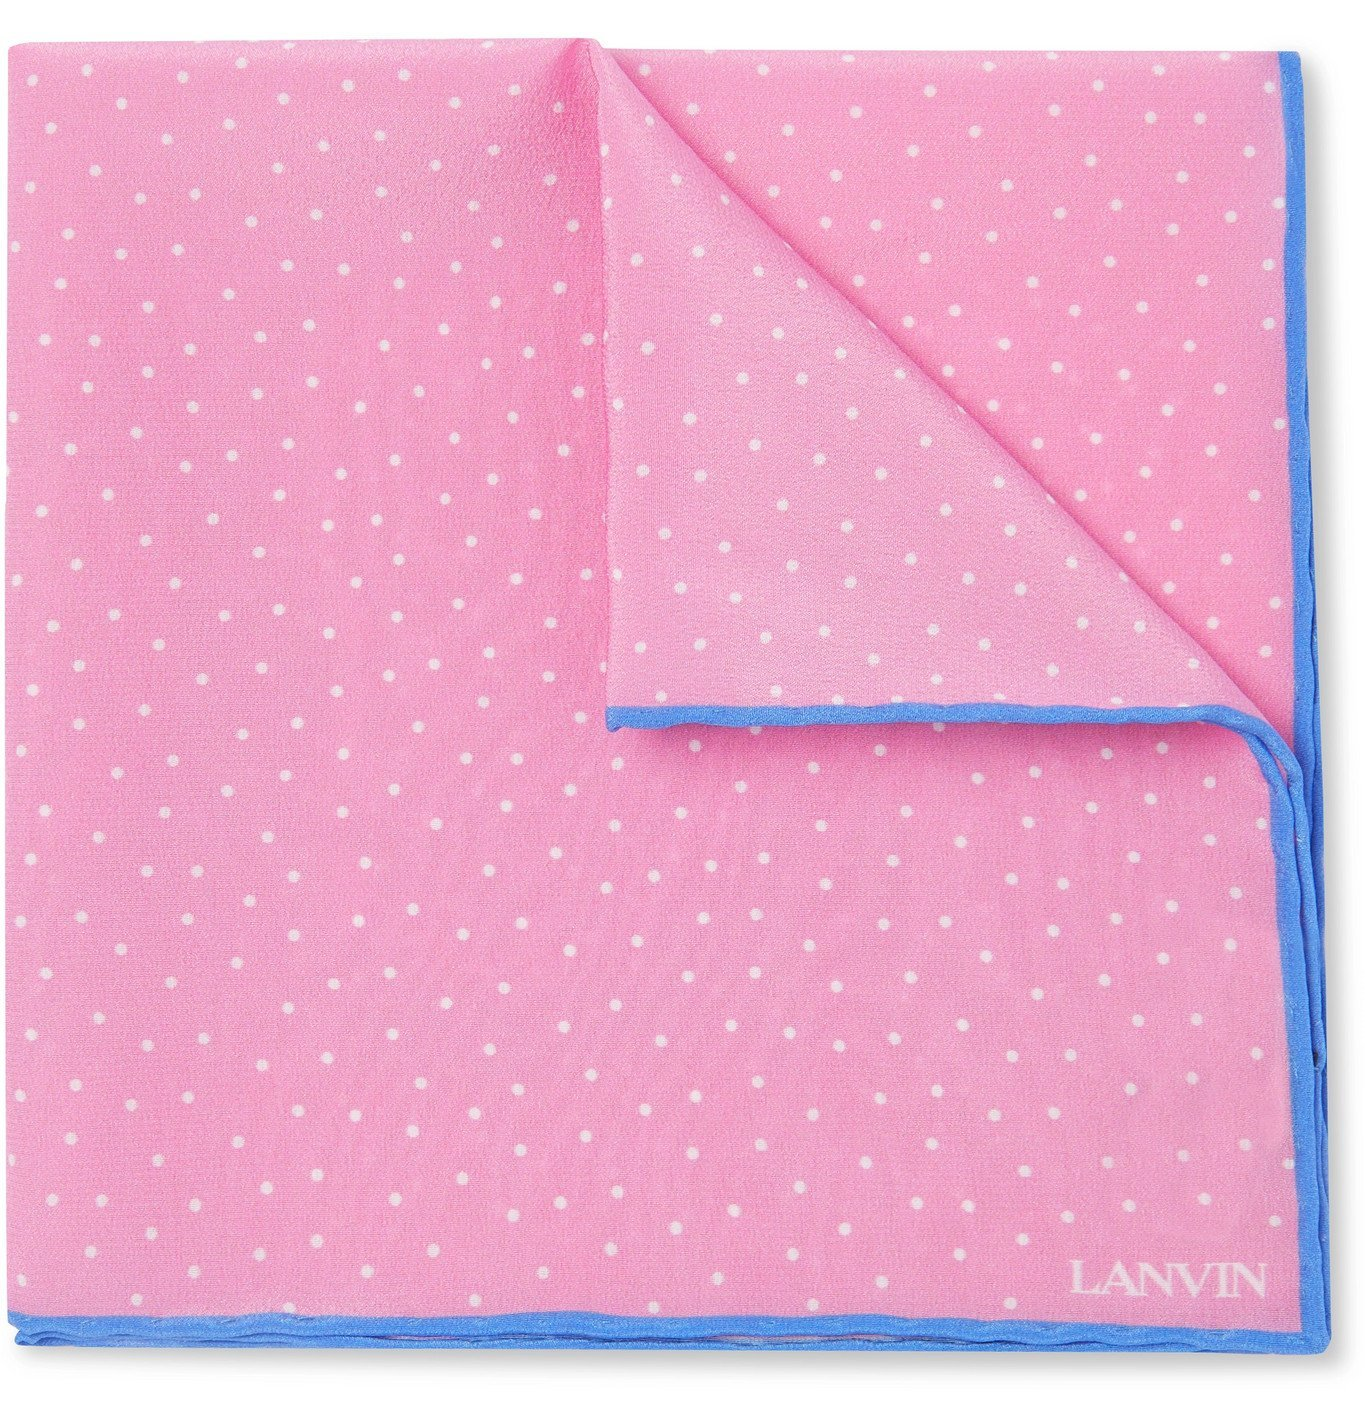 Photo: Lanvin - Polka-Dot Silk Pocket Square - Pink